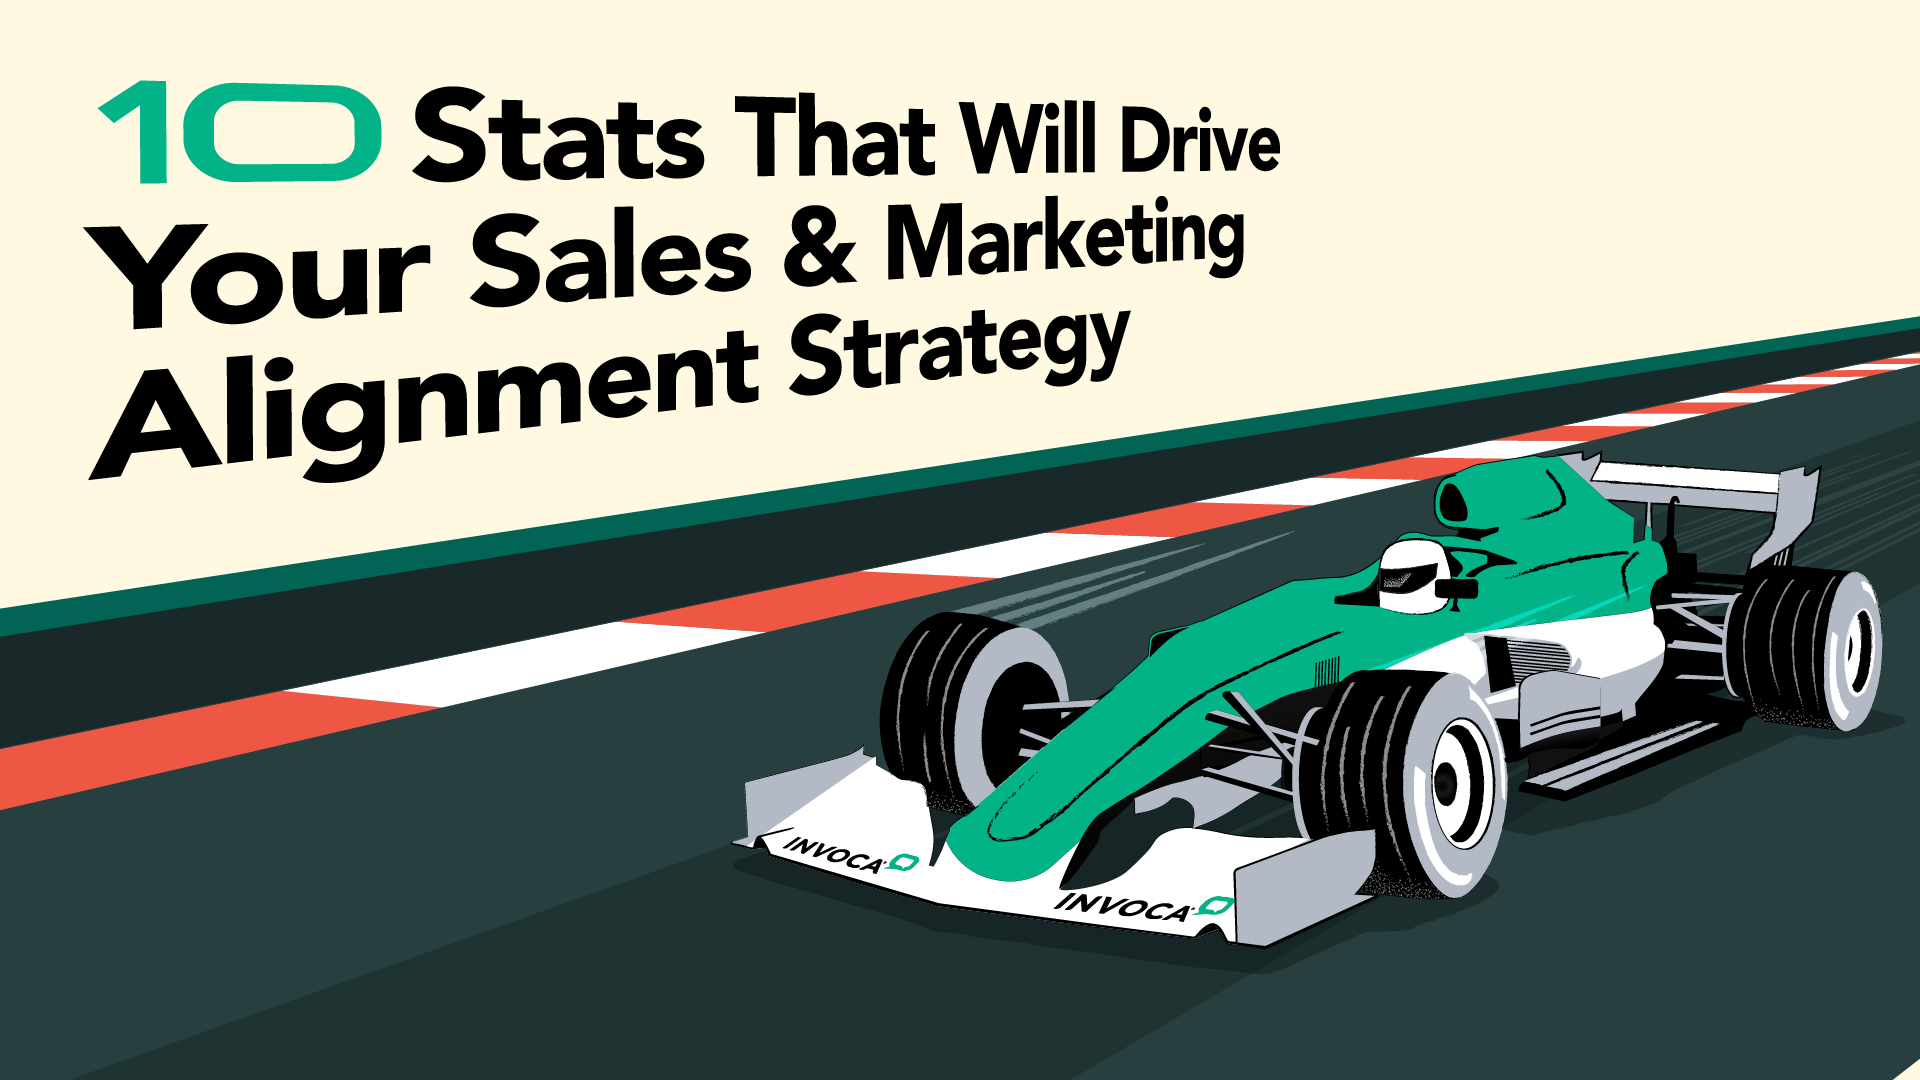 10 Stats to Drive Your Sales & Marketing Alignment Strategy